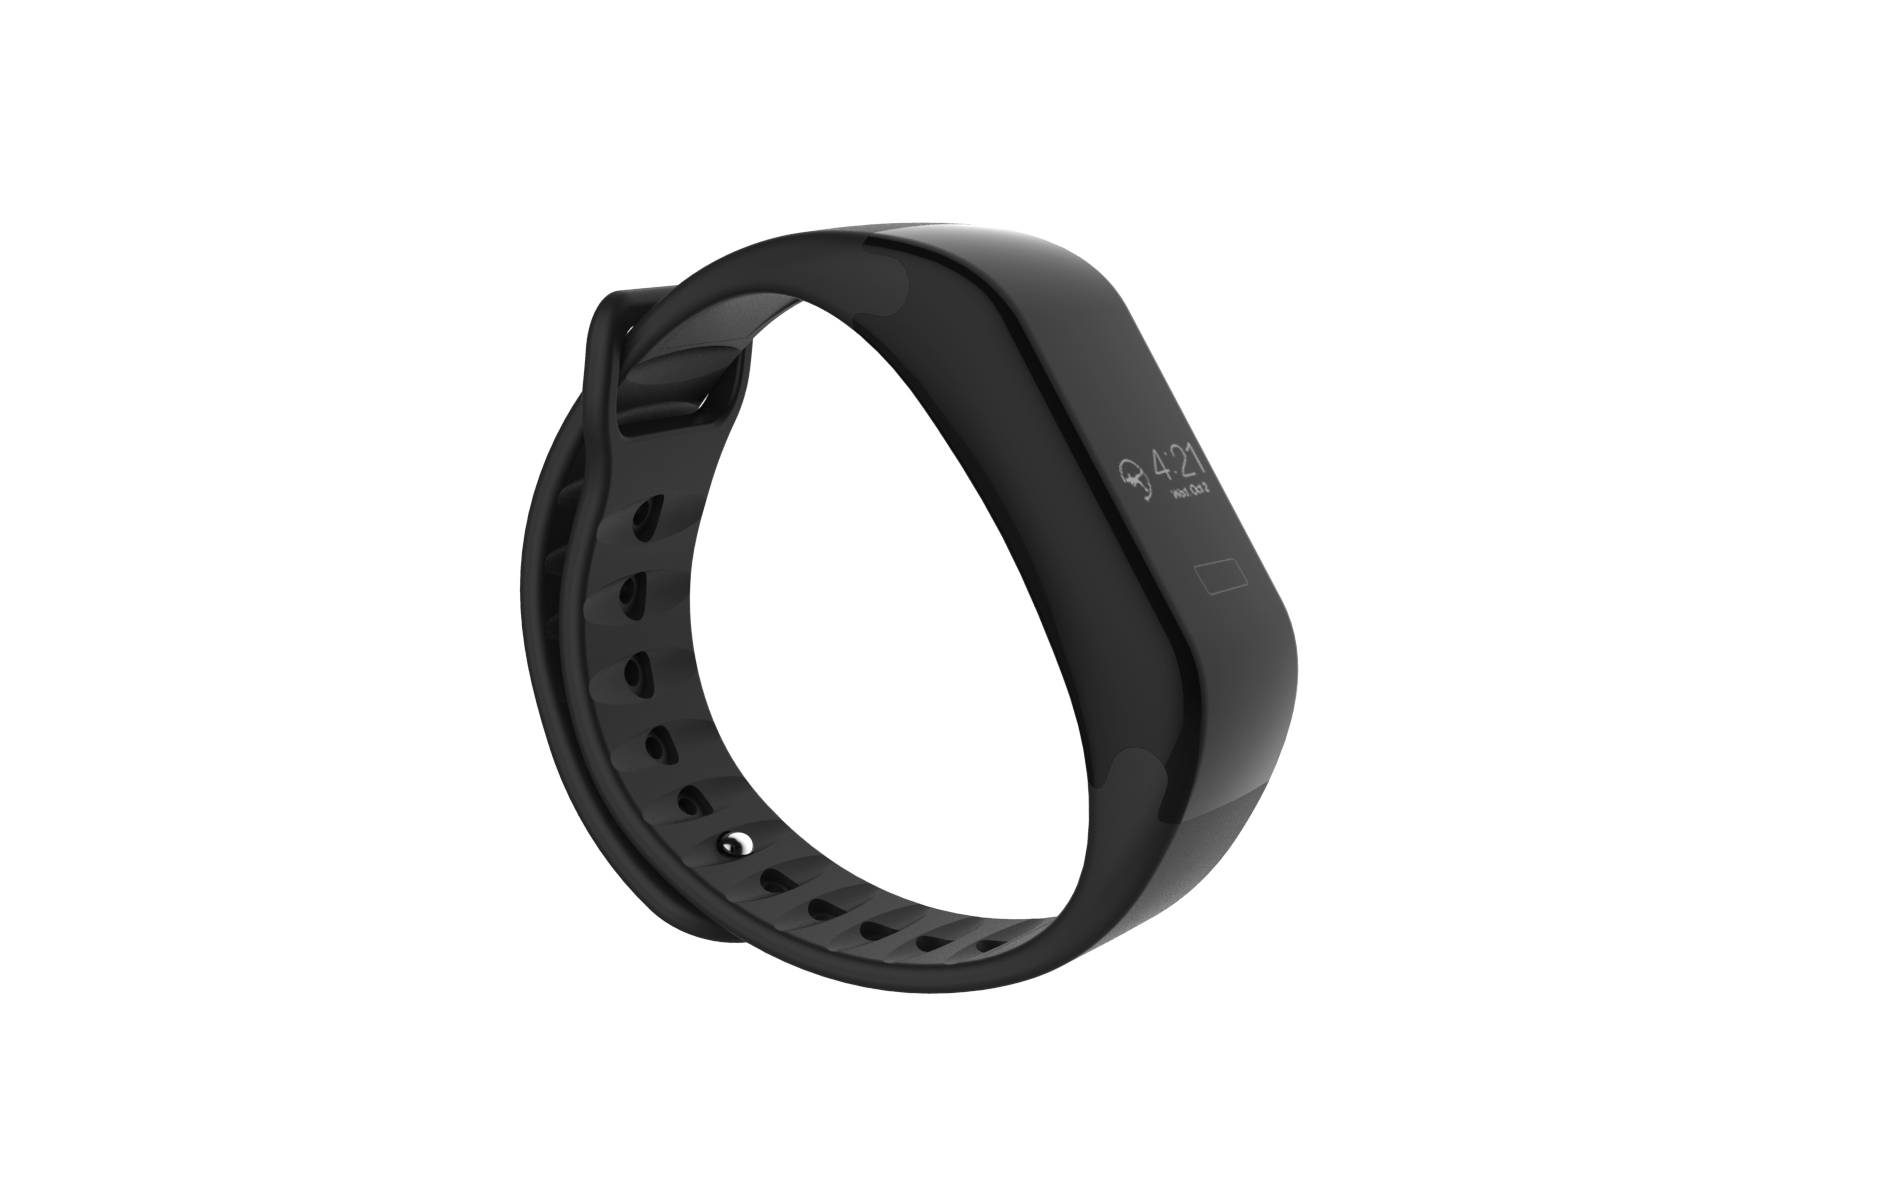 Waterproof Sports Watch with Dynamic Heart Rate Monitor E08